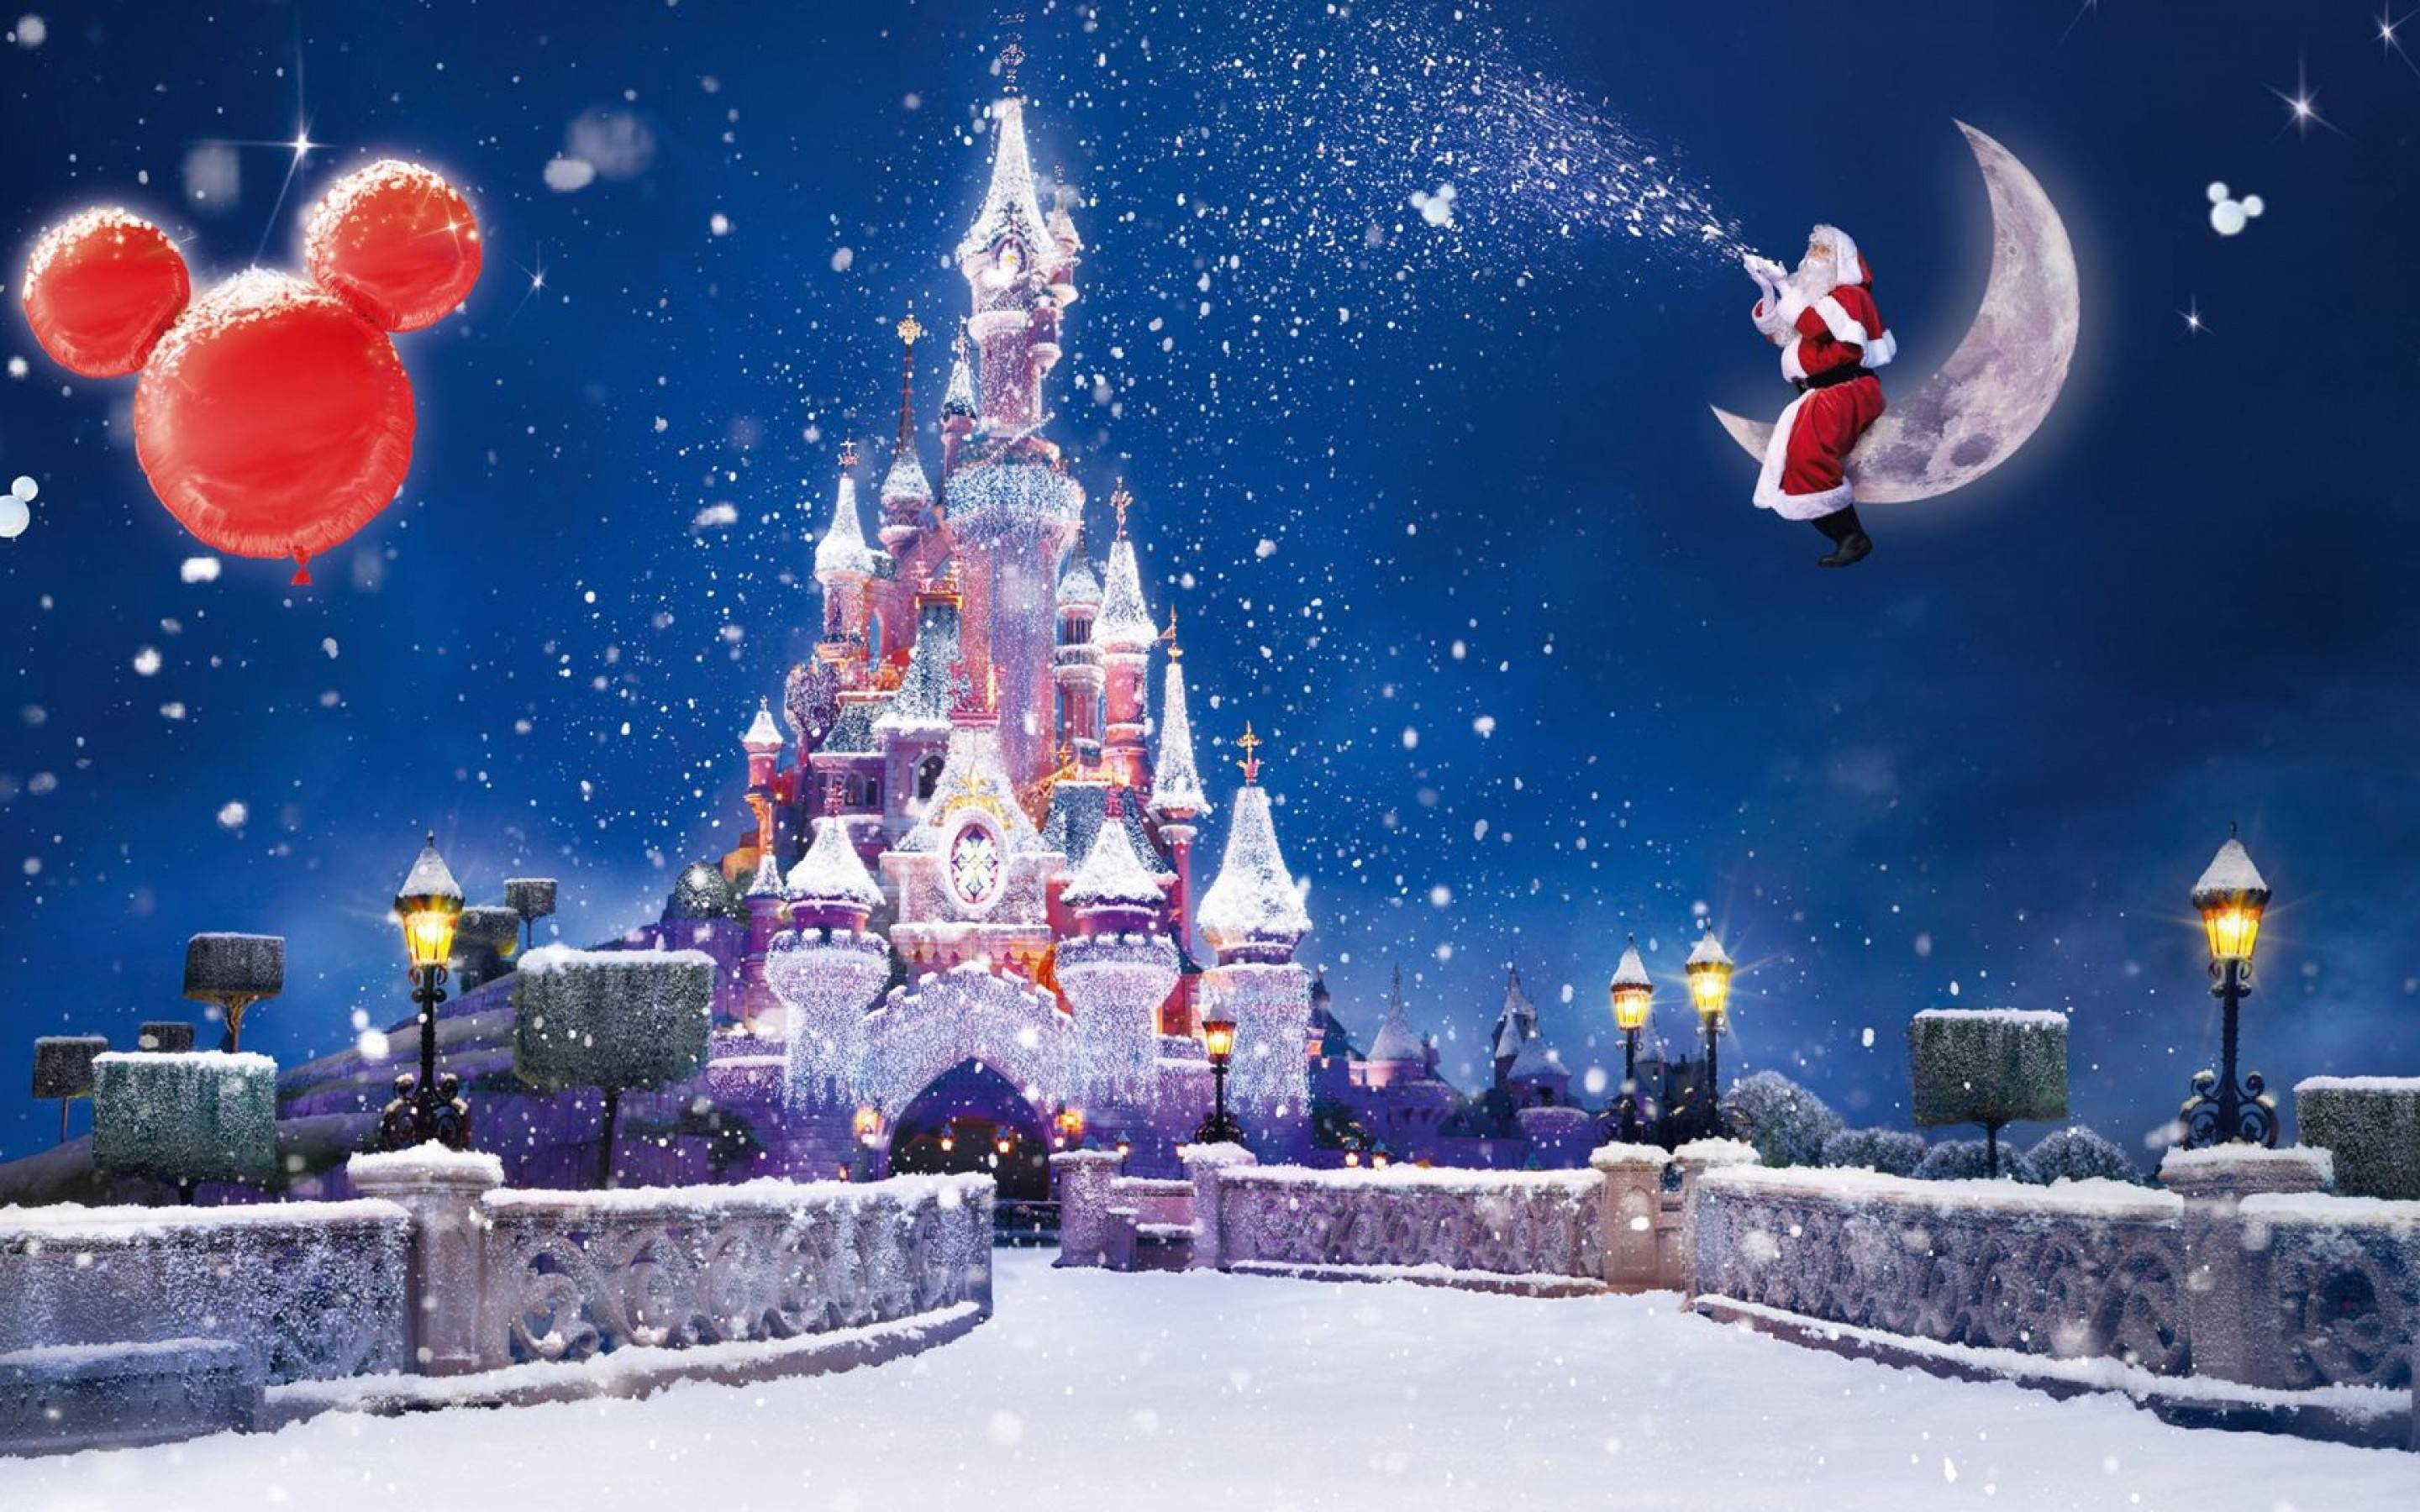 disney christmas wallpapers desktop - wallpaper cave